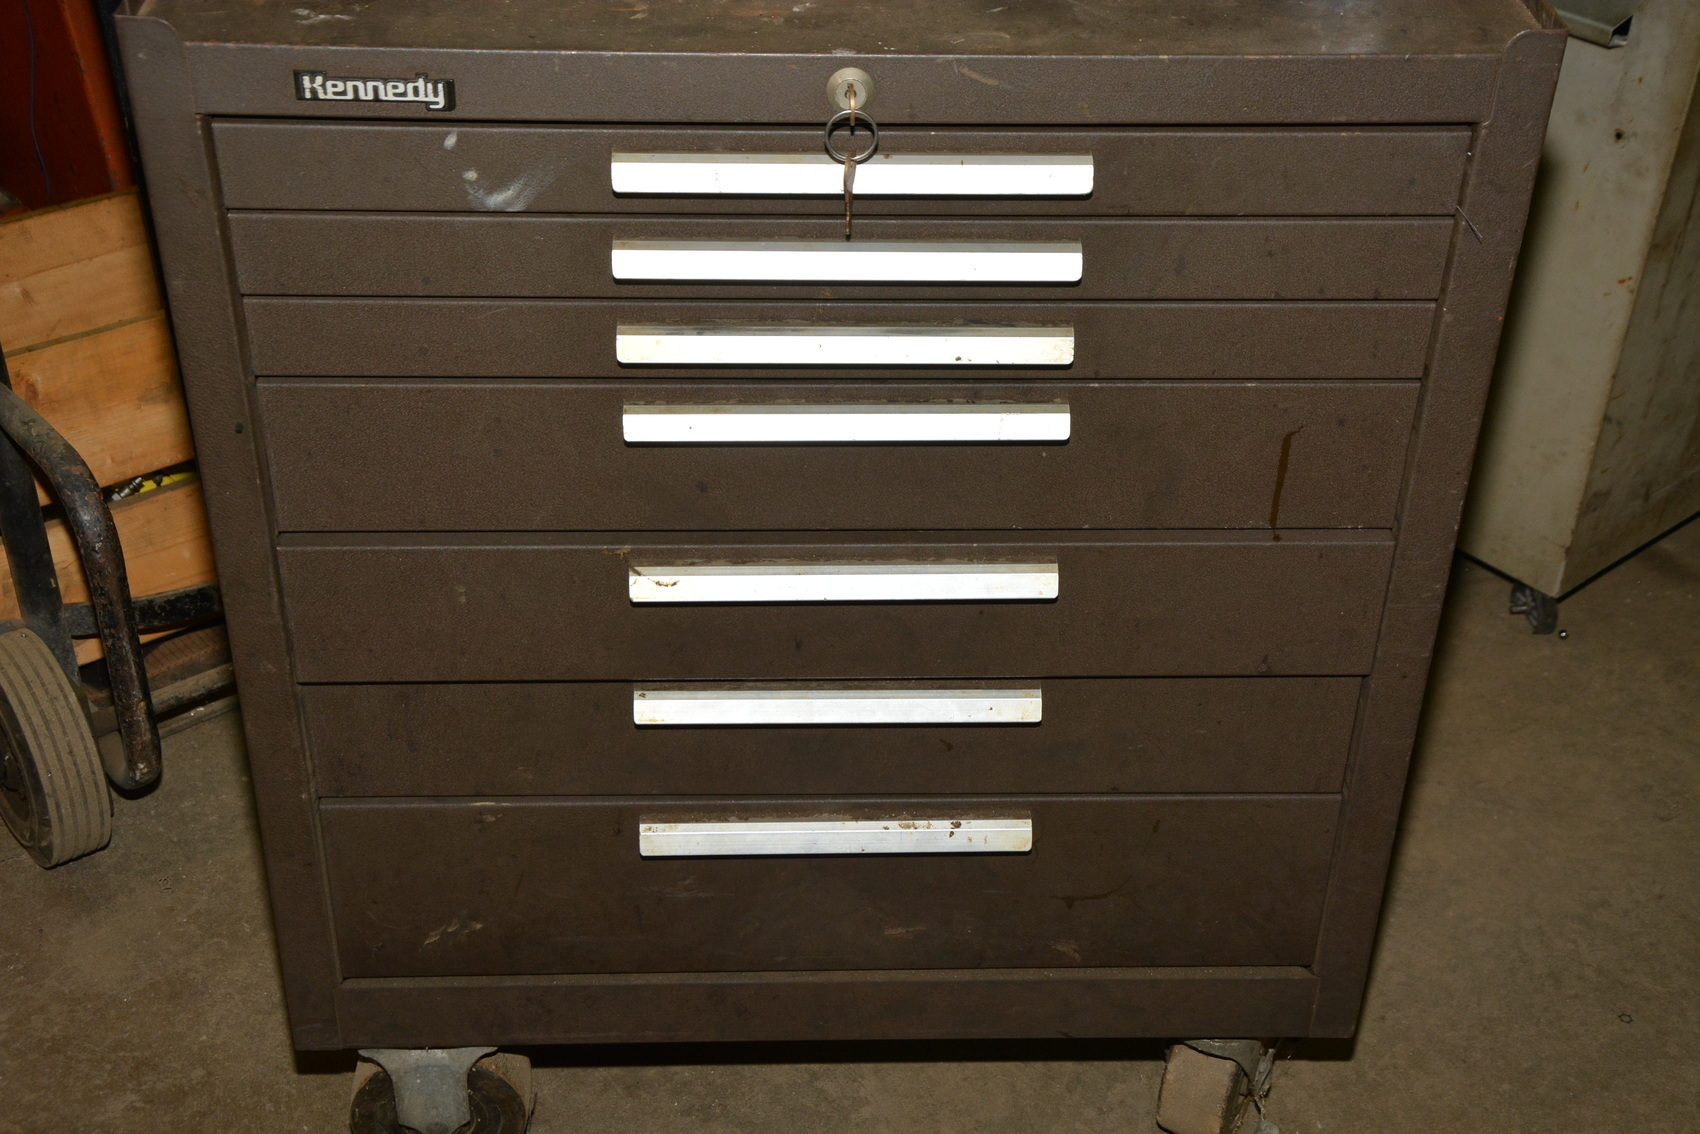 Kennedy Tool Box Roller Cabinet 7 8 Drawer Chest 29x20x49